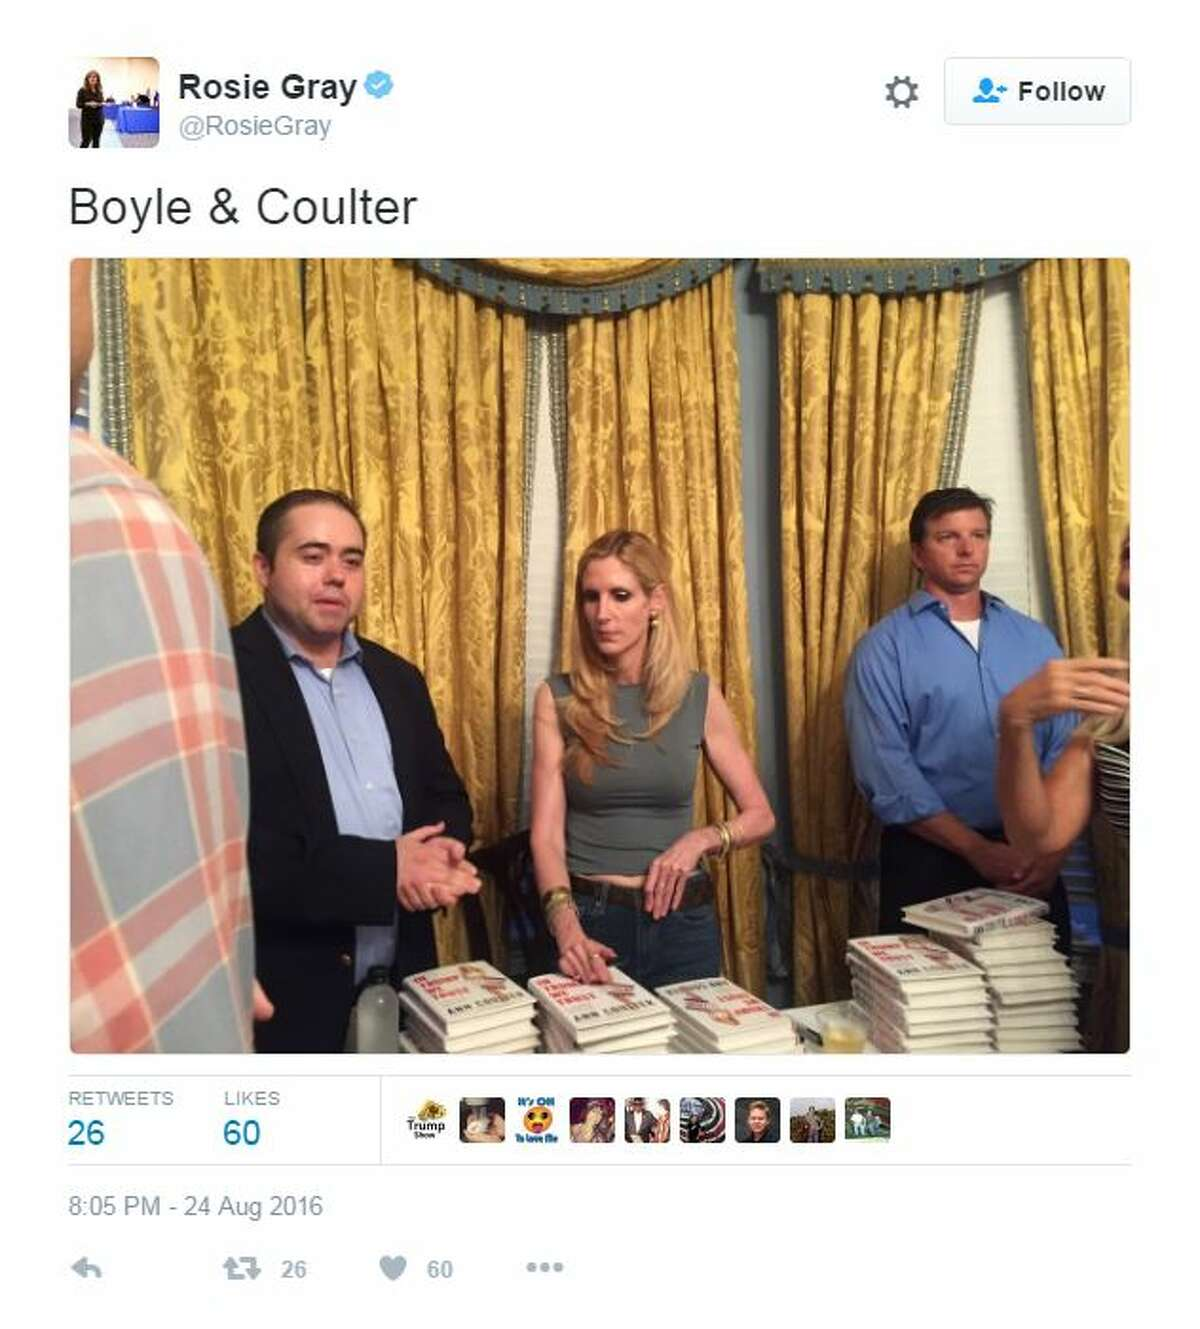 Coulter at a book signing on the same night Trump shifted his hardline stance on immigration, August 24, 2016.